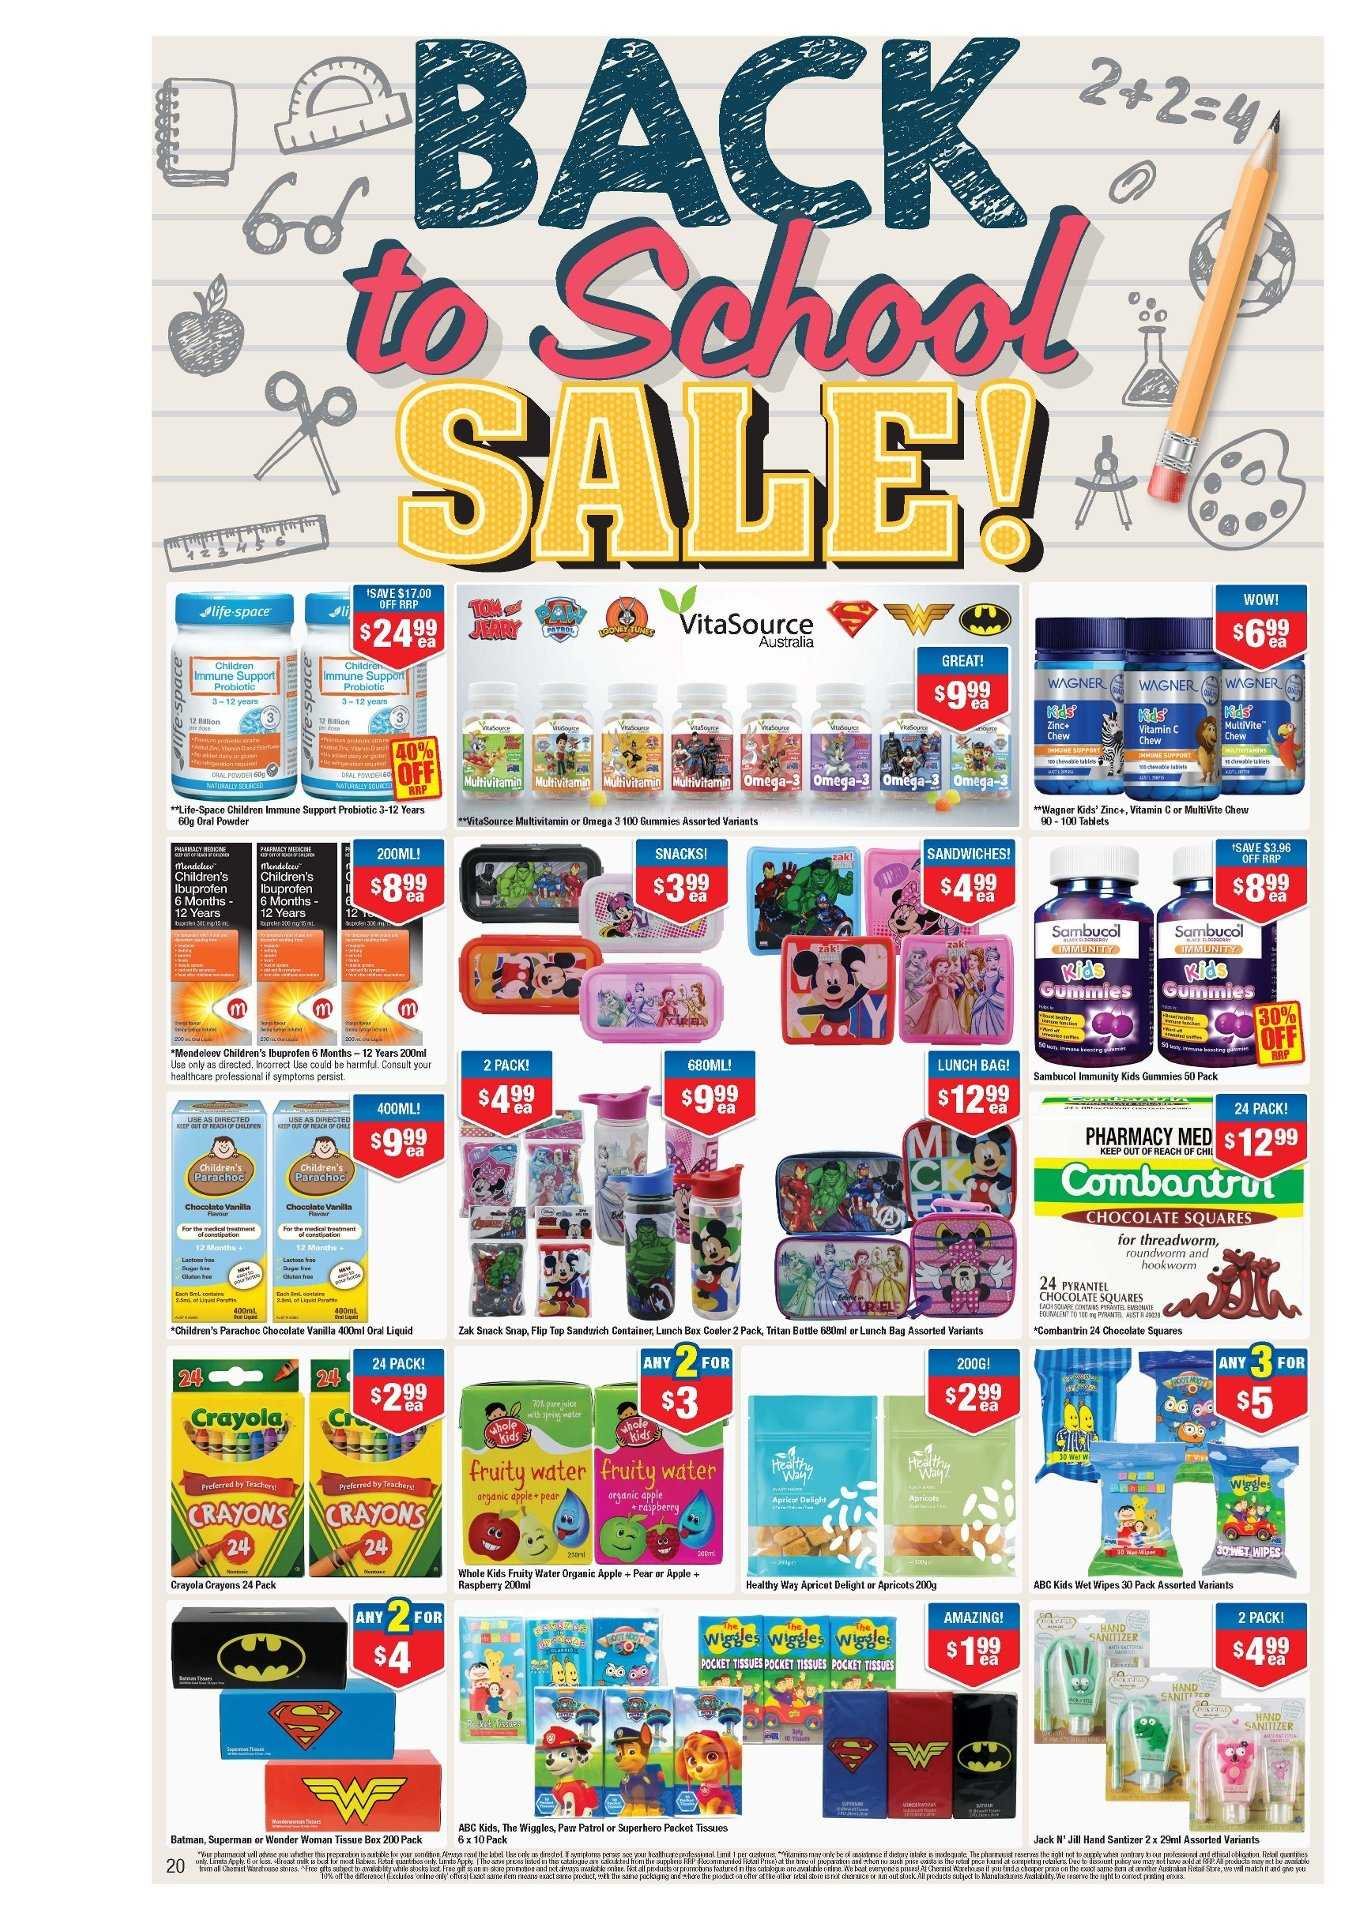 Chemist Warehouse catalogue and weekly specials 1 1 2019